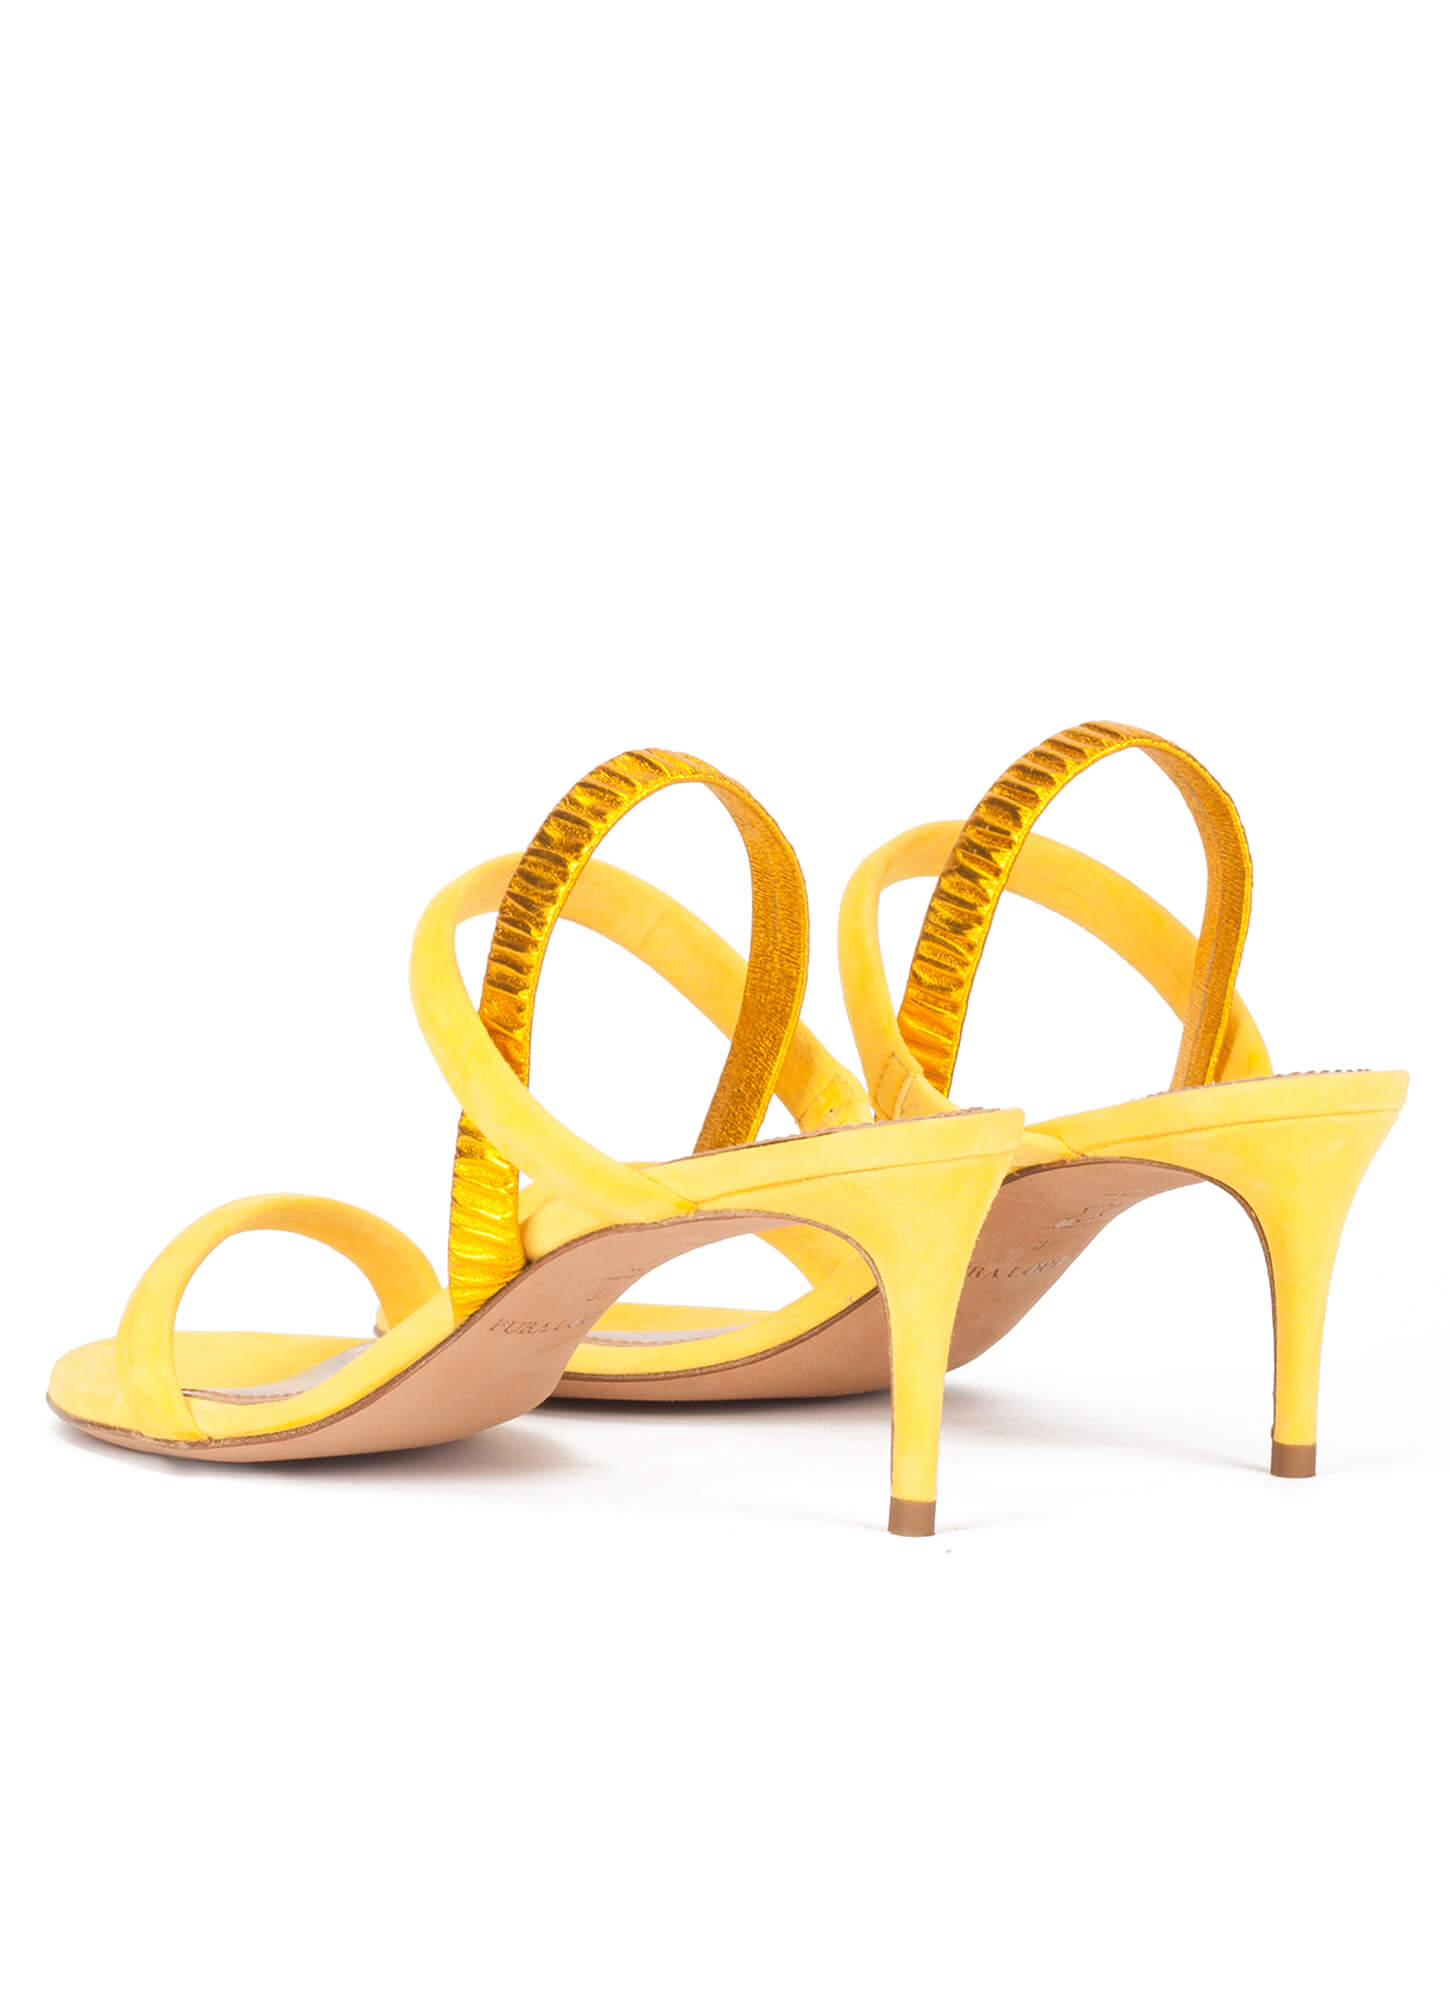 25b245287fe32 Strappy mid-heeled sandals in mimosa yellow suede . PURA LOPEZ